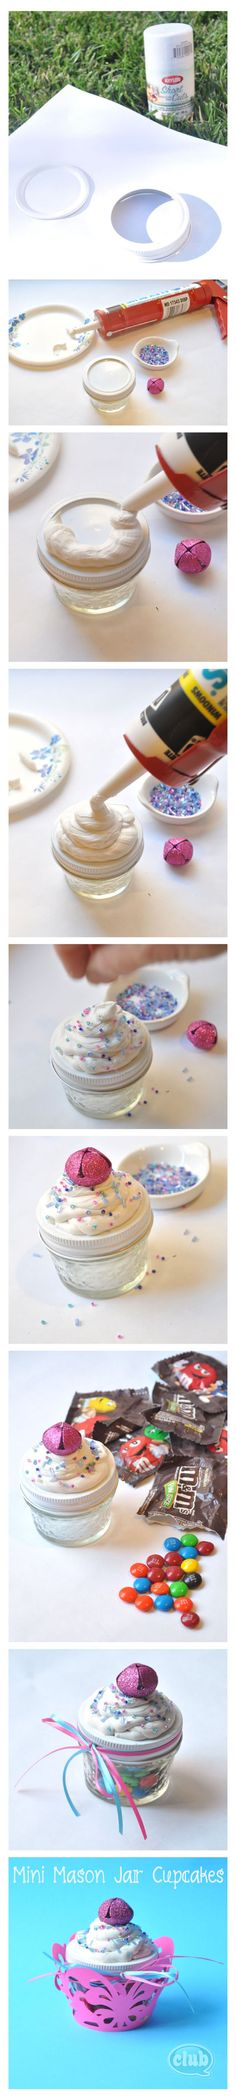 DIY Mason jar cupcakes! Cute idea